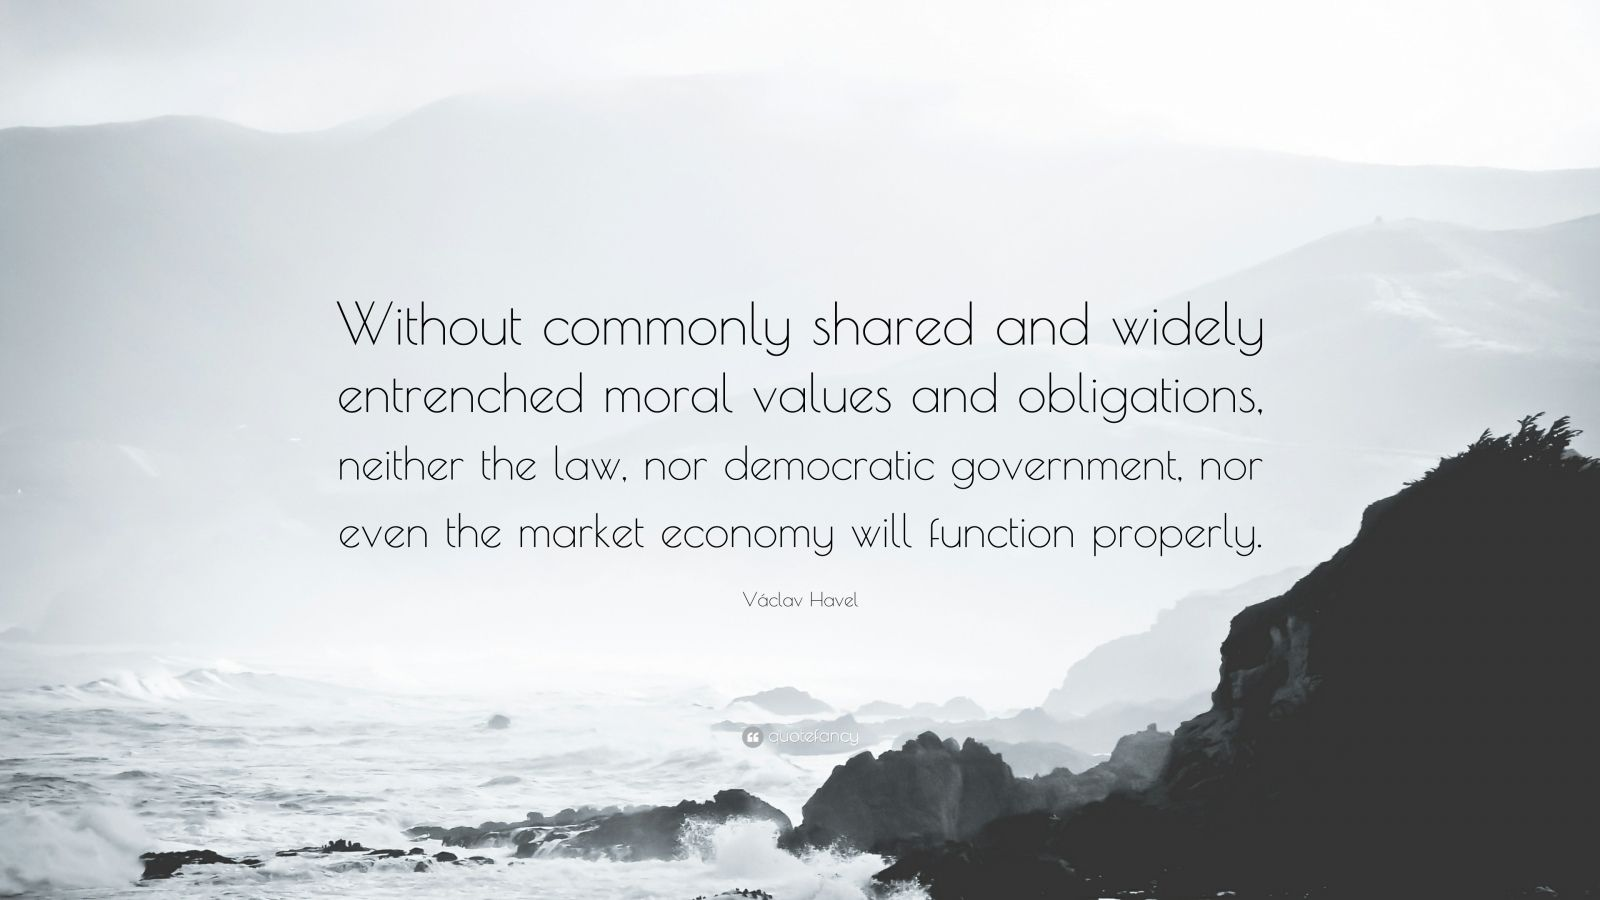 """Václav Havel Quote: """"Without commonly shared and widely entrenched moral values and obligations, neither the law, nor democratic government, nor even the market economy will function properly."""""""